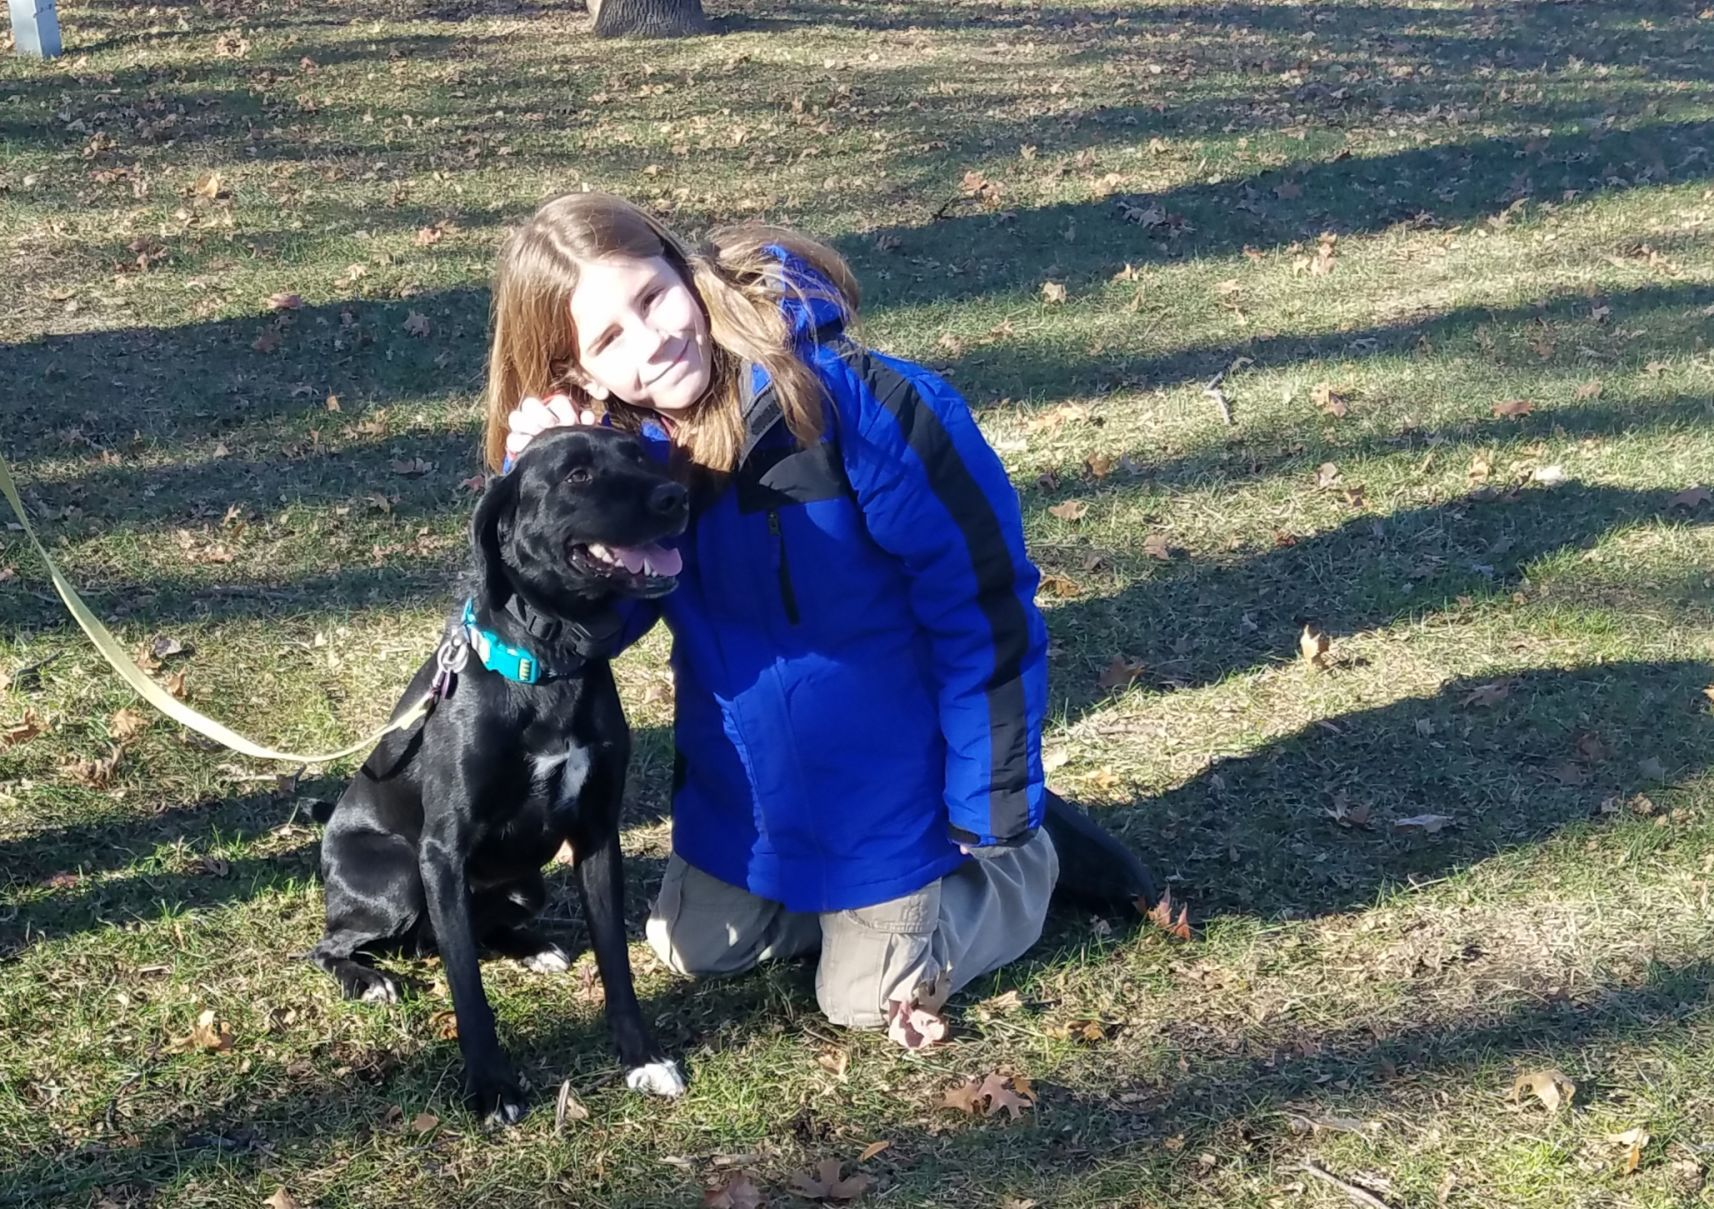 10 year old cedar falls boy posts encounters with dogs on internet rh wcfcourier com